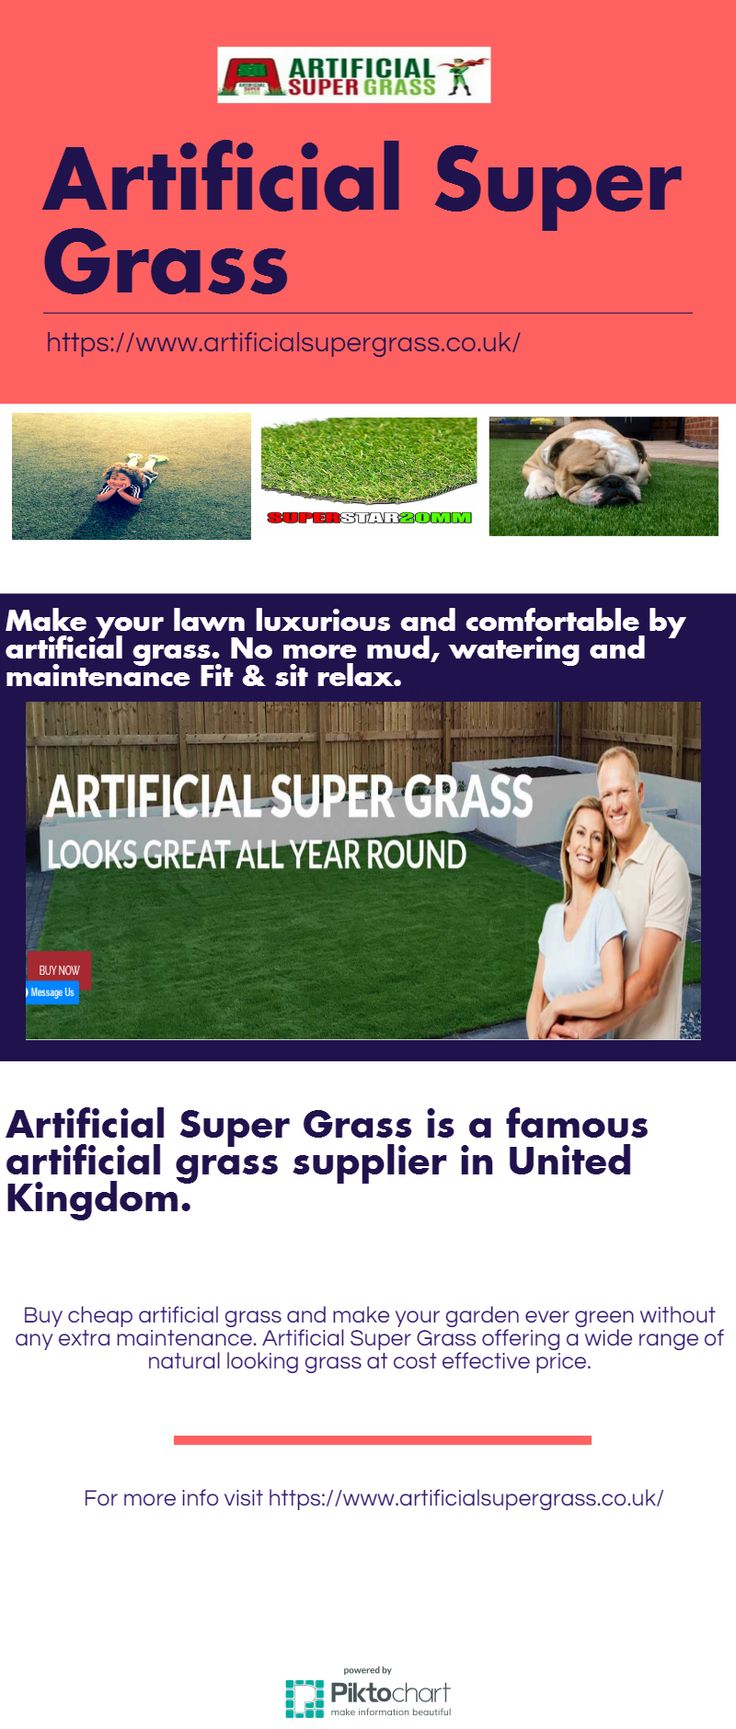 Buy cheap artificial grass and make your garden evergreen without any extra maintenance. Artificial Super Grass offering a wide range of natural looking grass at cost effective price. For more info visit https://www.artificialsupergrass.co.uk/